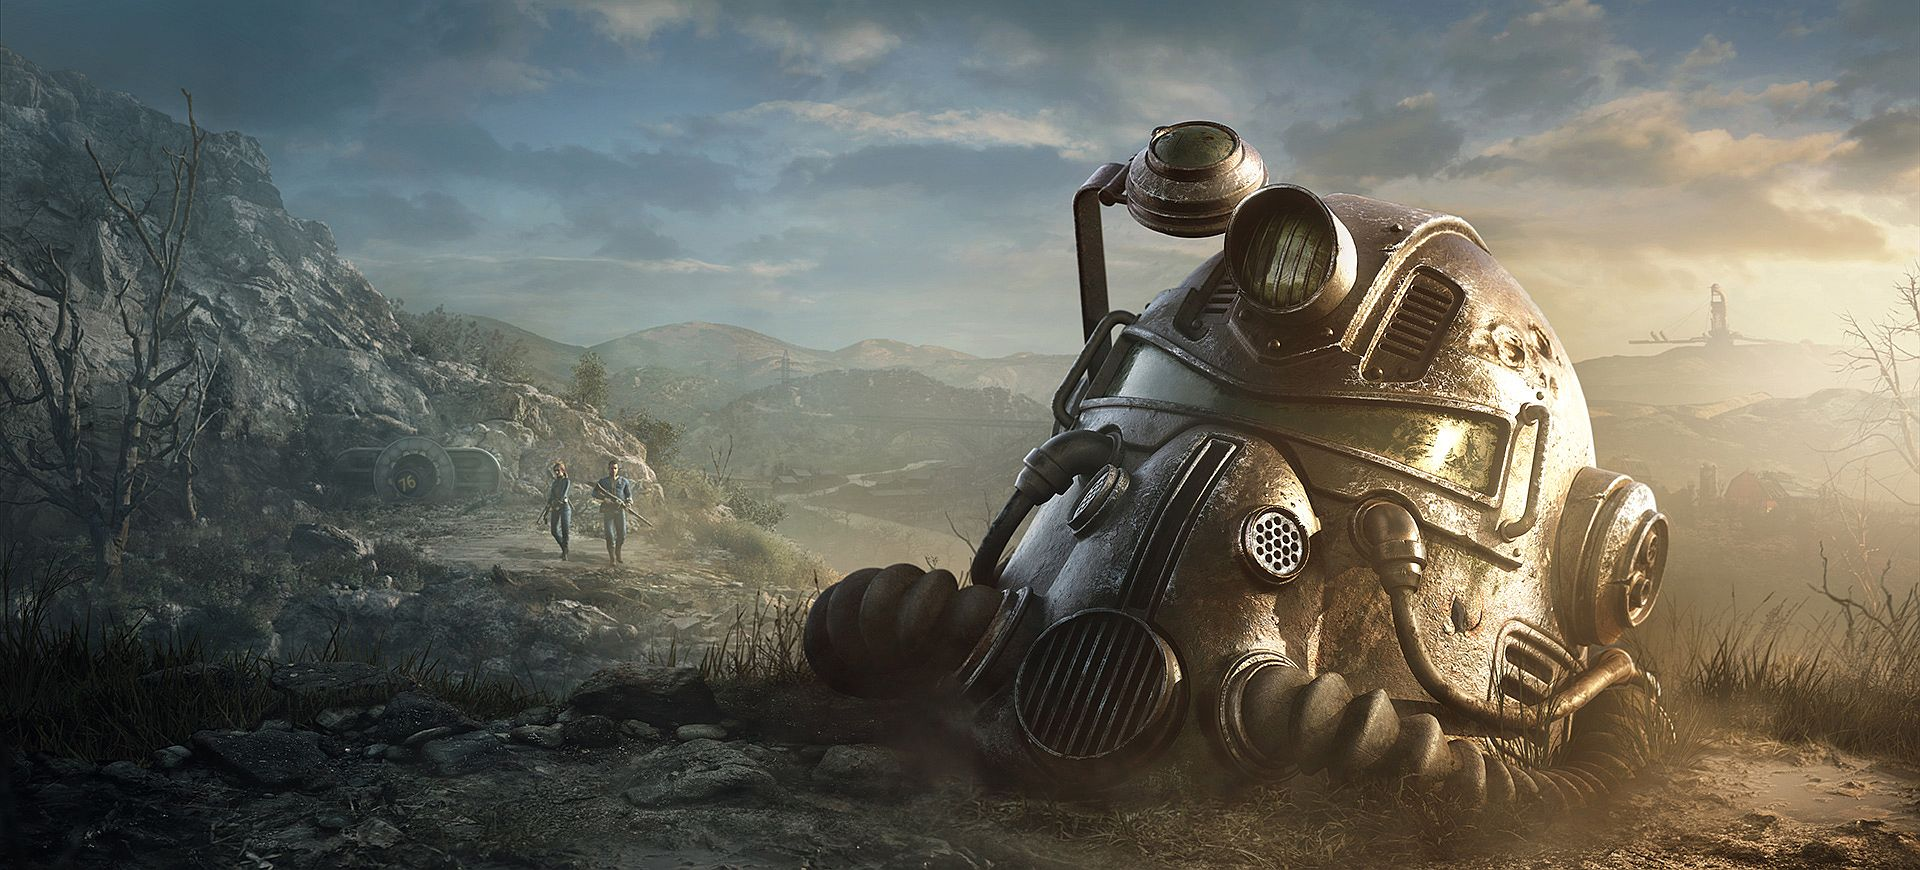 Bethesda and the UFC have a weird partnership to promote Fallout 76 screenshot